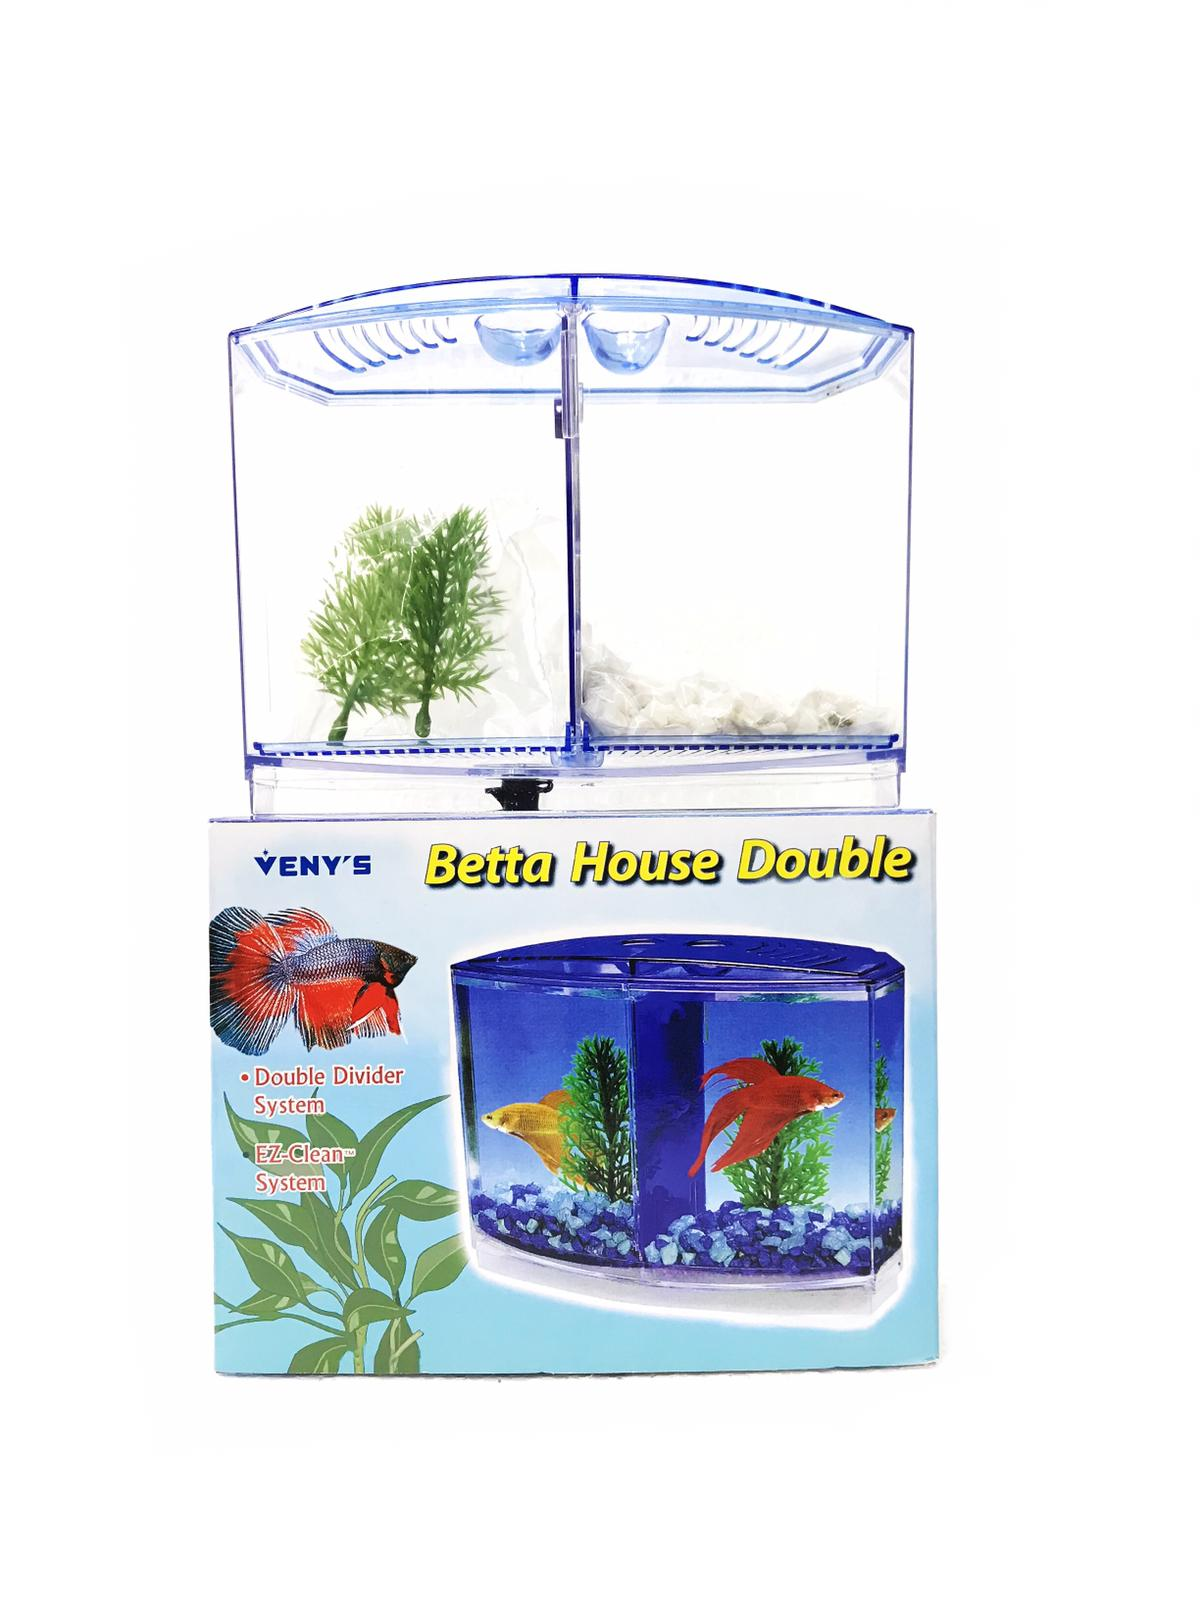 Veny's Betta House Double